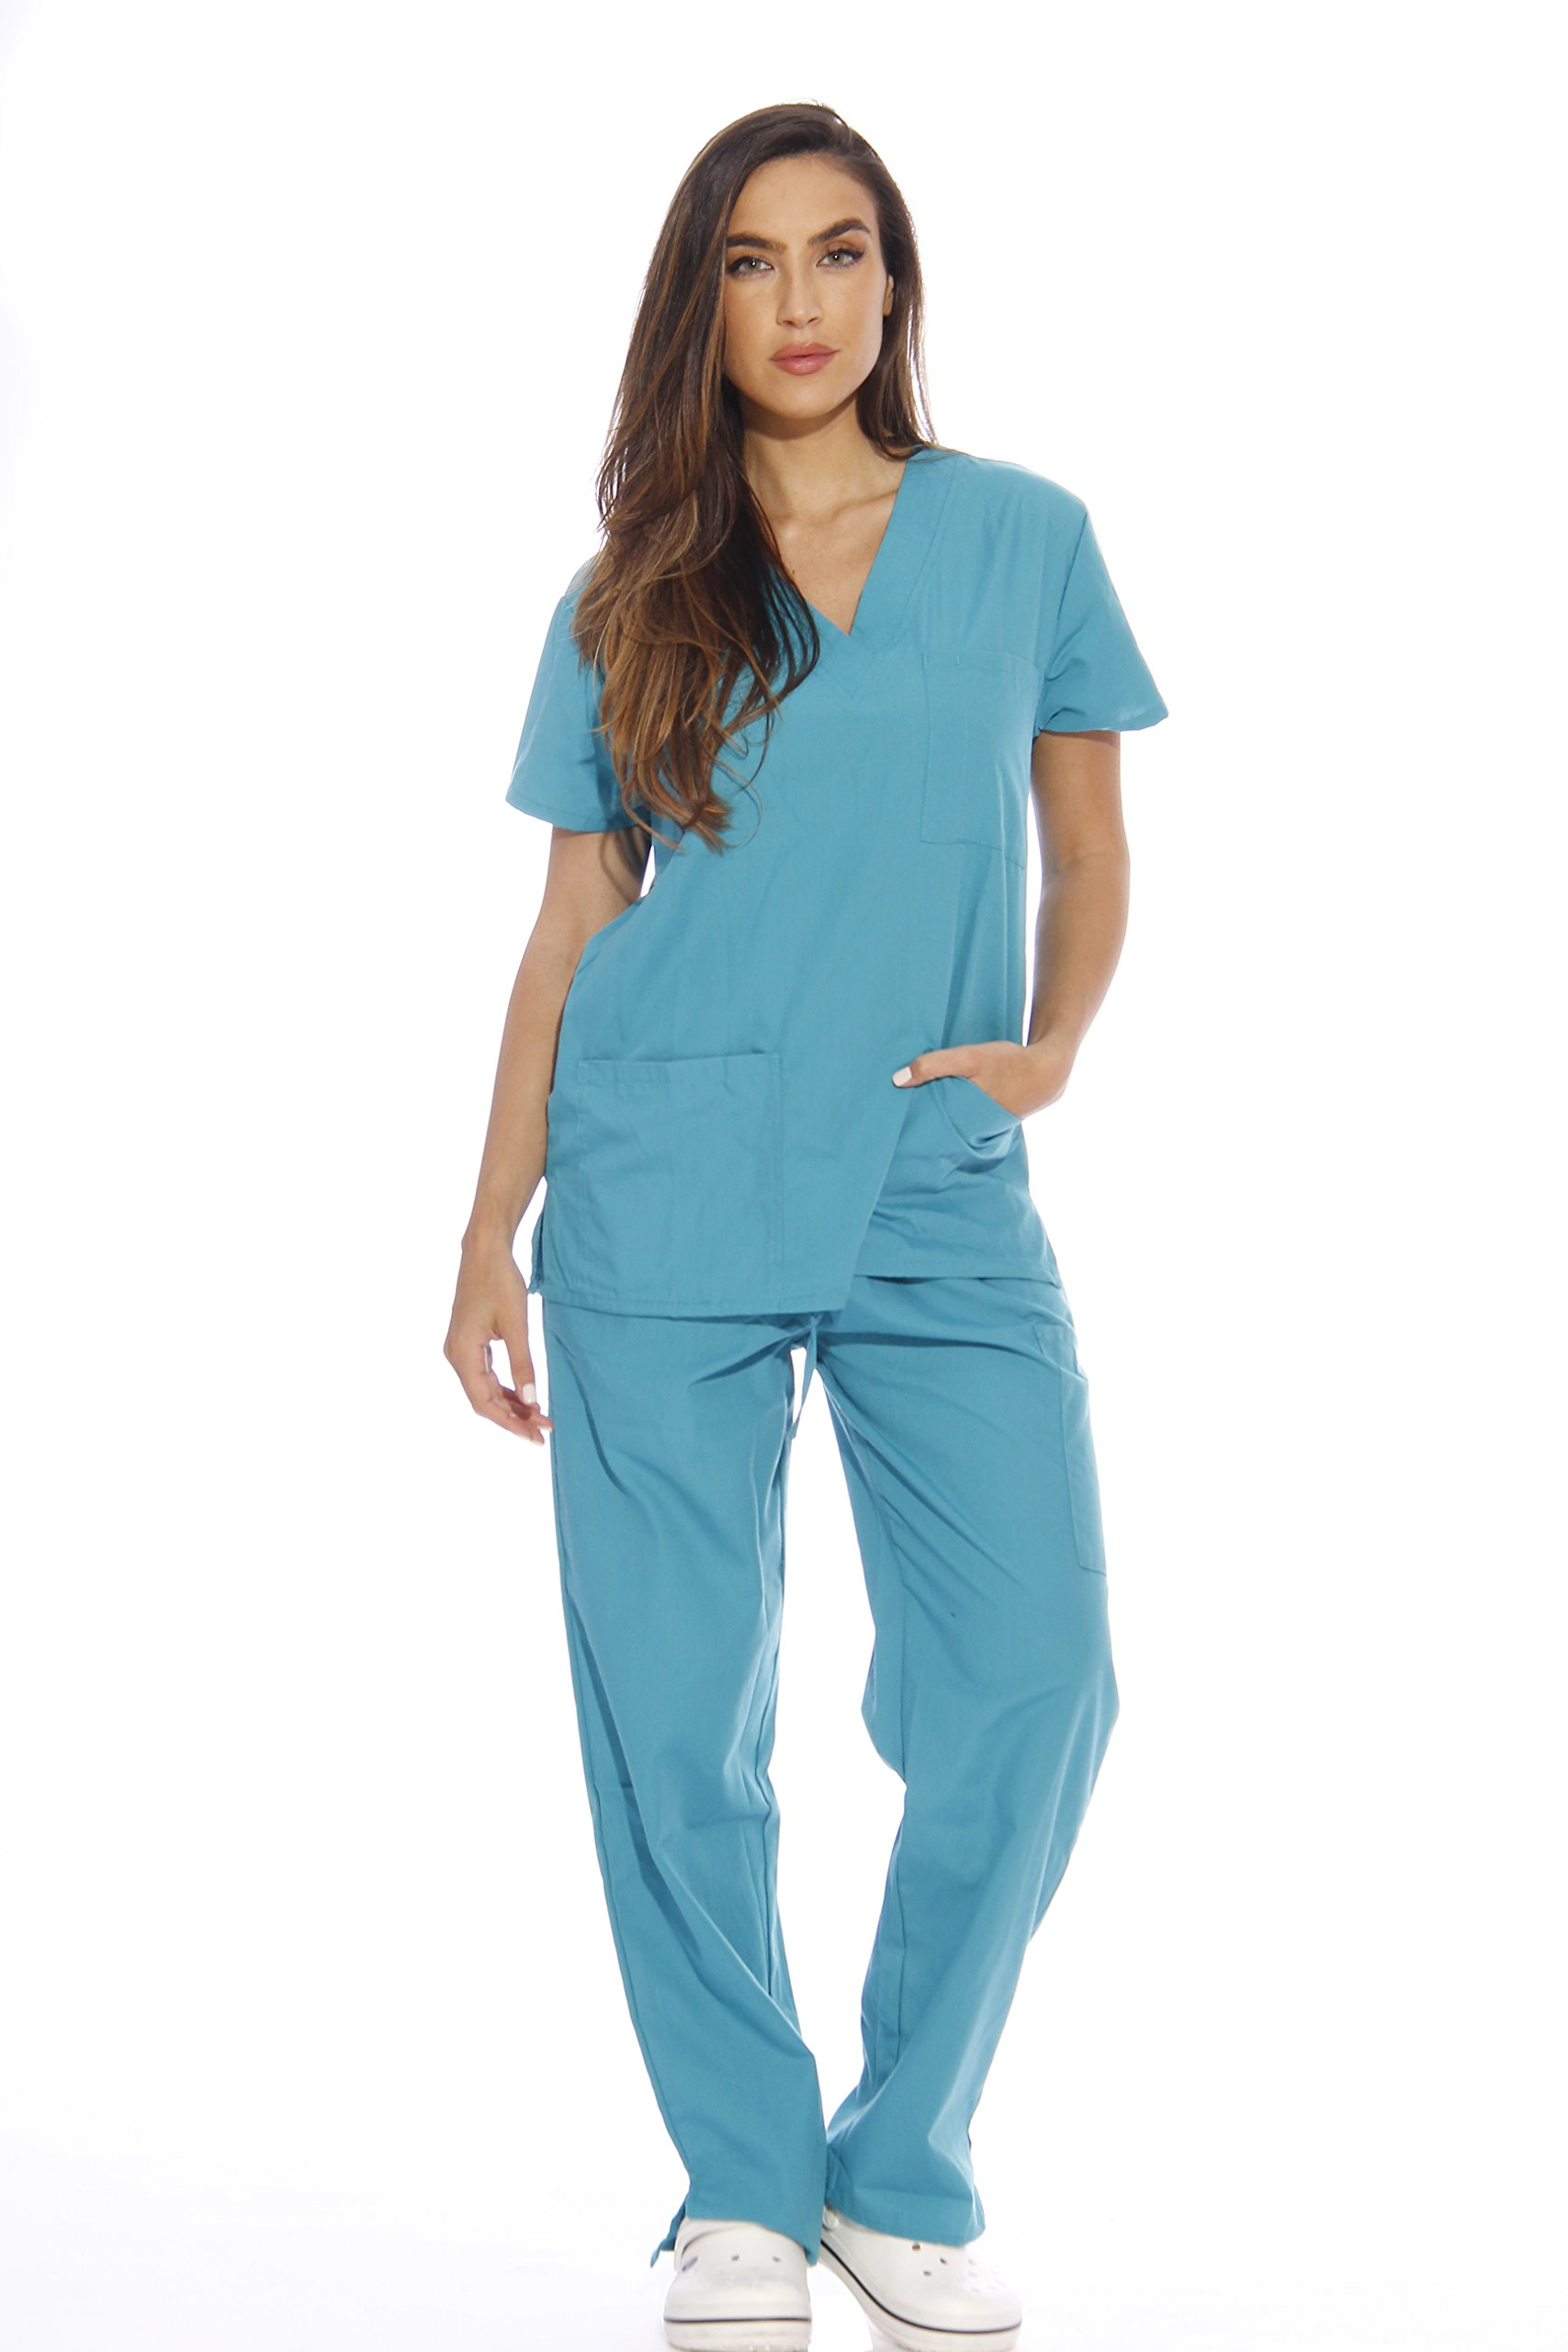 Just Love Women's Scrub Sets Six Pocket Medical Scrubs (V-Neck With Cargo Pant), Teal, Large